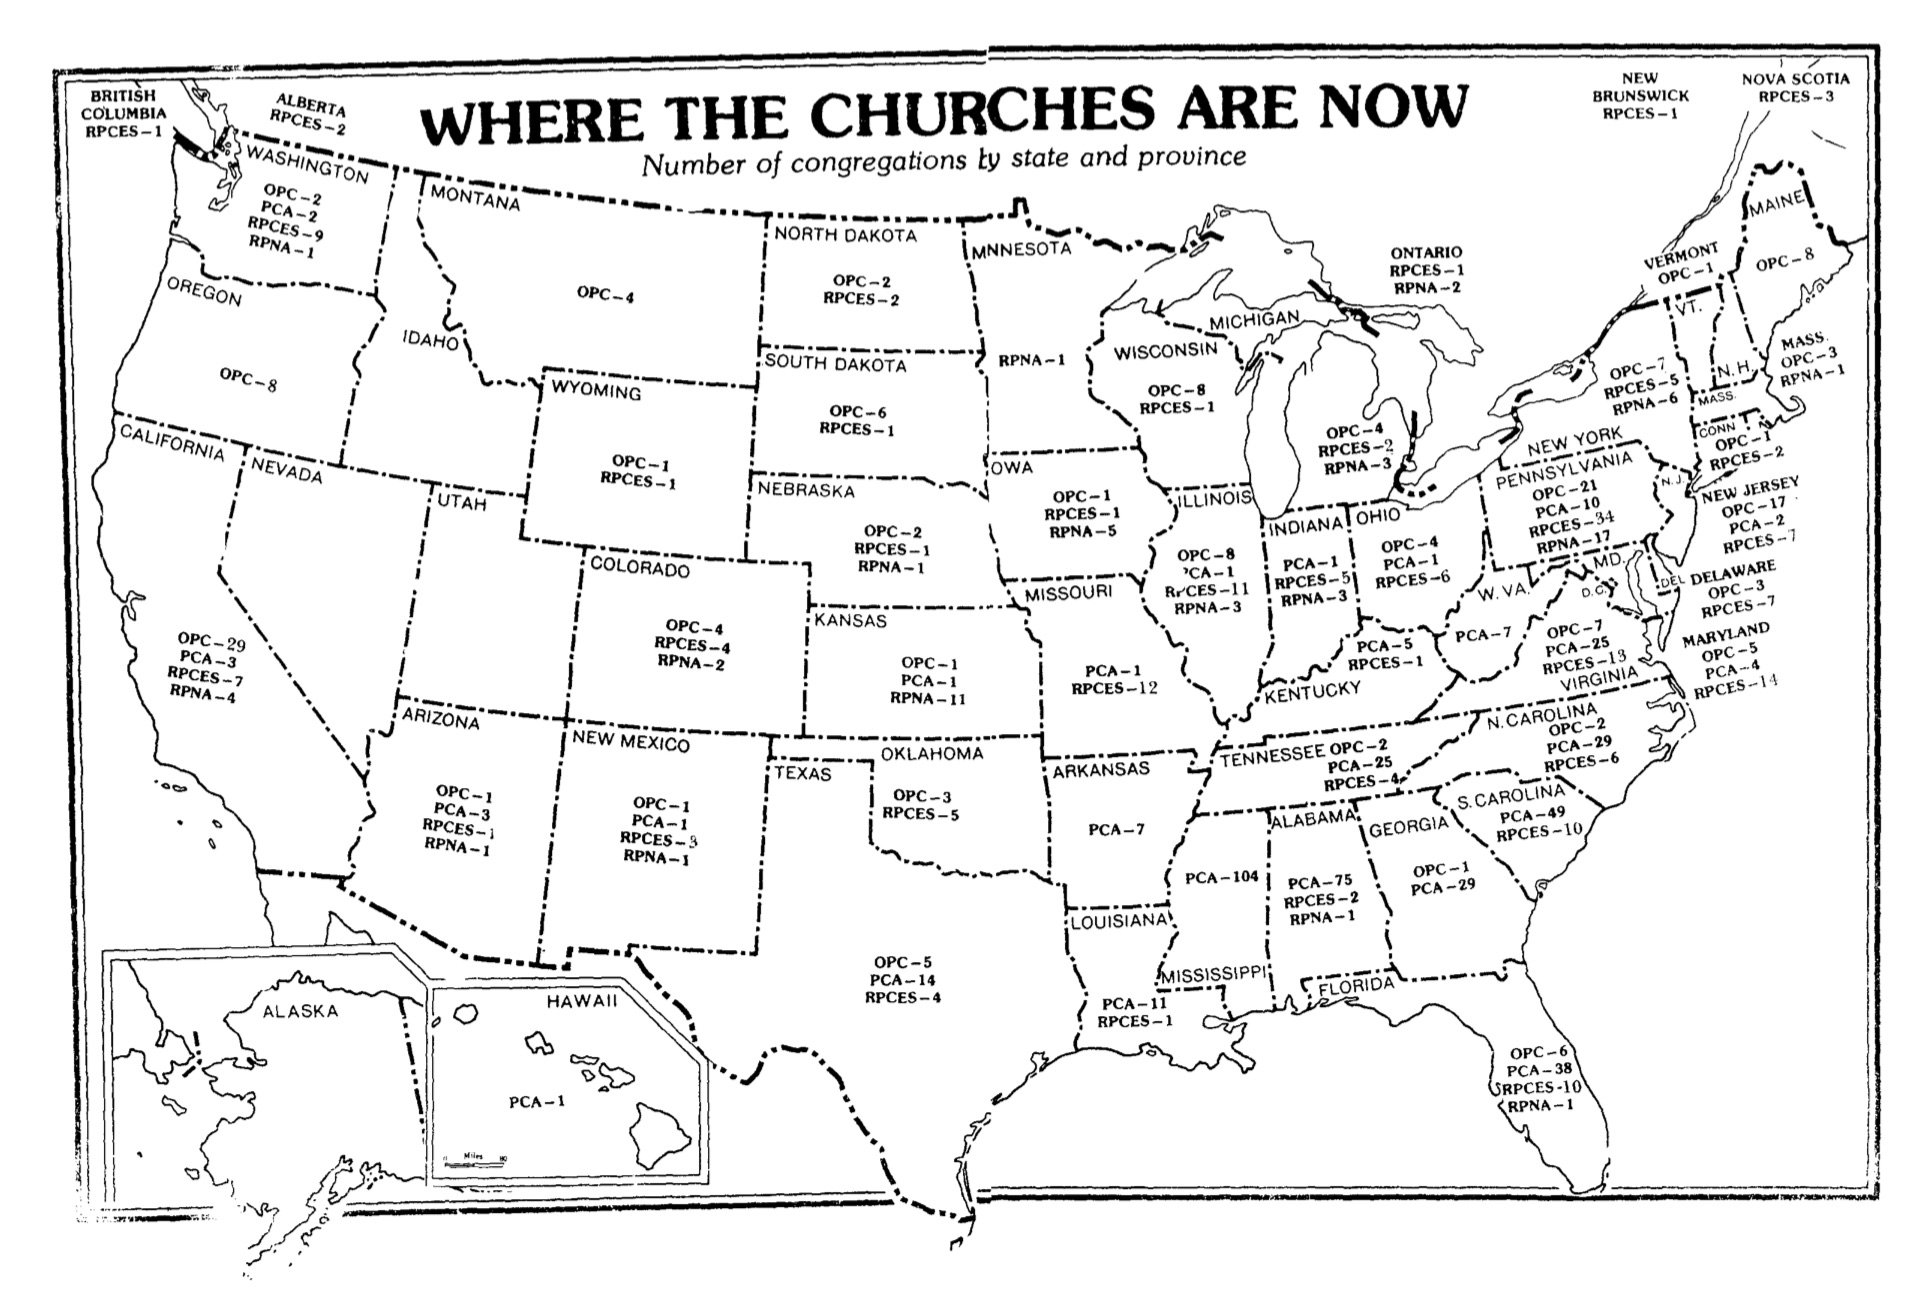 Where the Churches Are Now